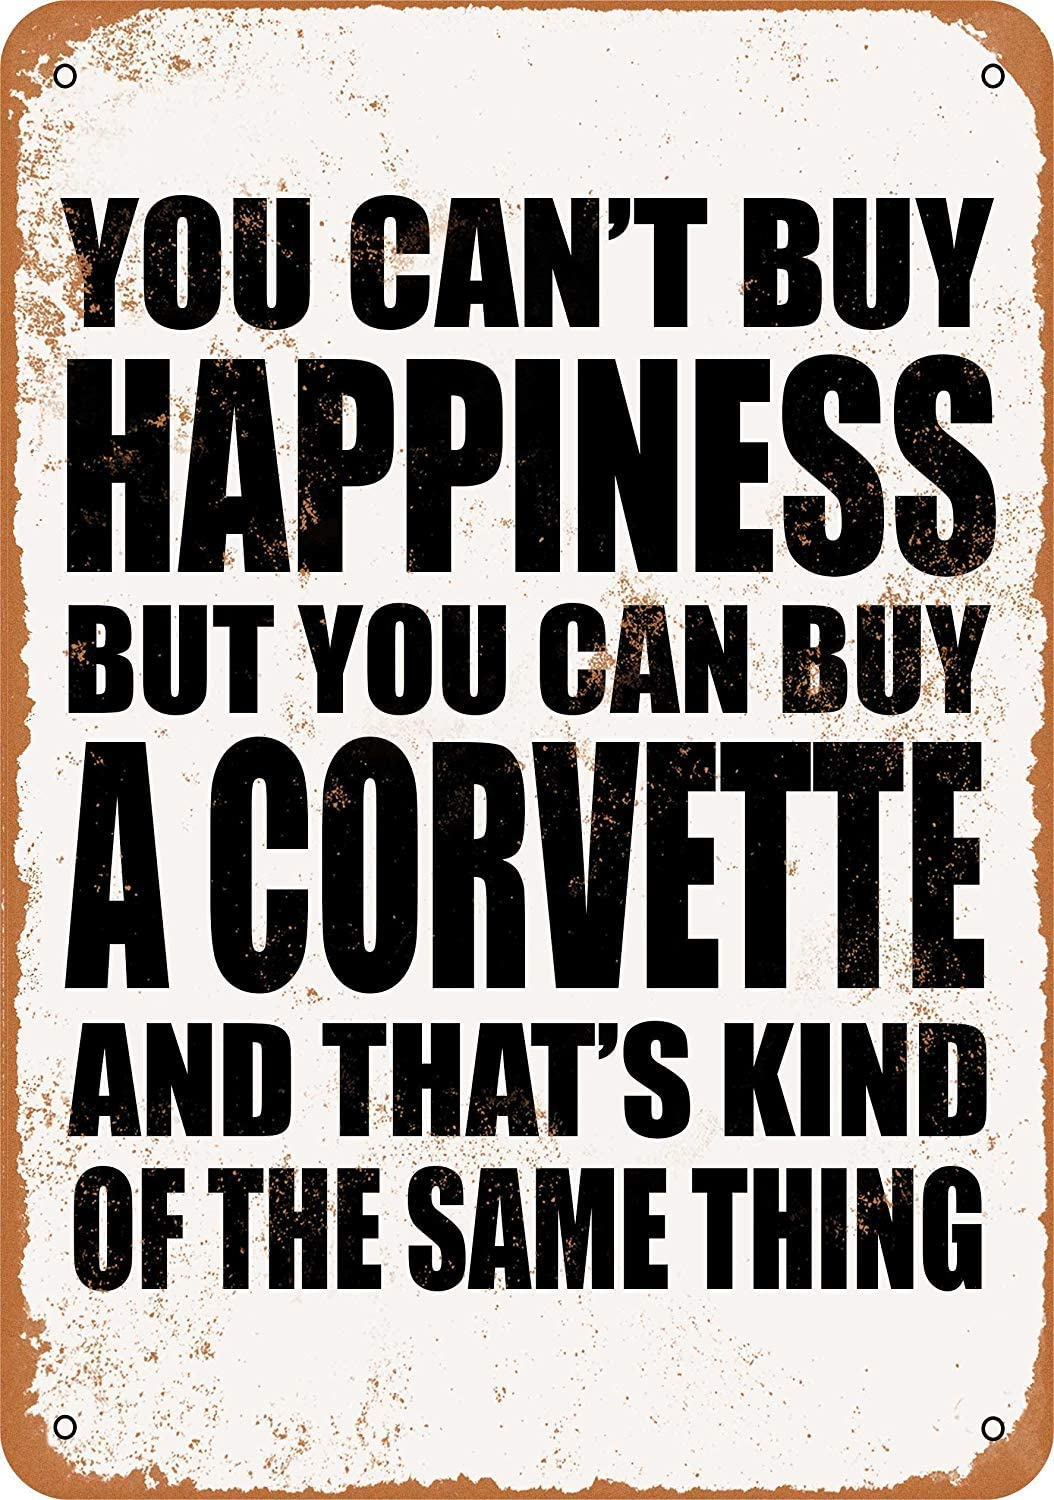 Anwei Signs 8 x 12 Tin Sign - You Can't Buy Happiness But You Can Buy a Corvette - Metal Sign Vintage Look Garage Man Cave Retro Wall Decor